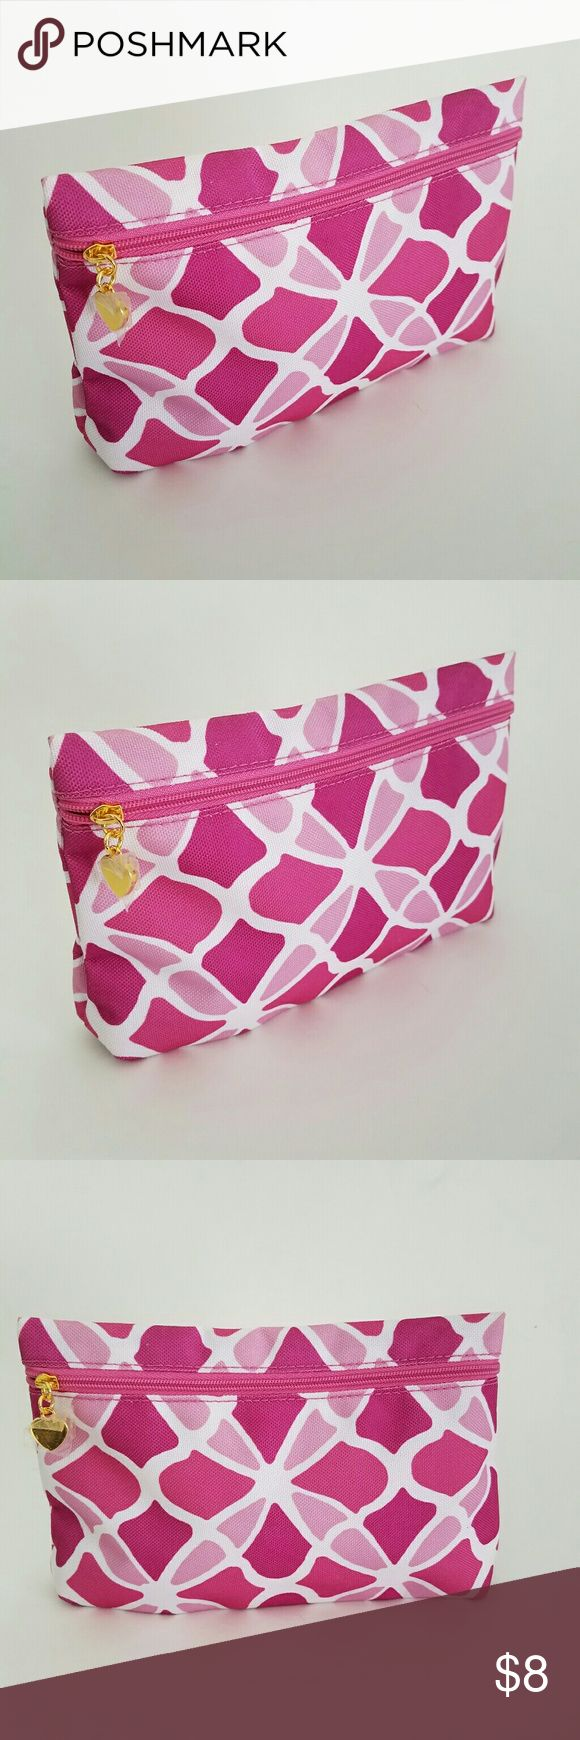 💟Clinique Make Up Bag - Perfect for bundling! NWOT Adorable! Perfect for bundling! Xoxoxoxo Clinique Bags Cosmetic Bags & Cases